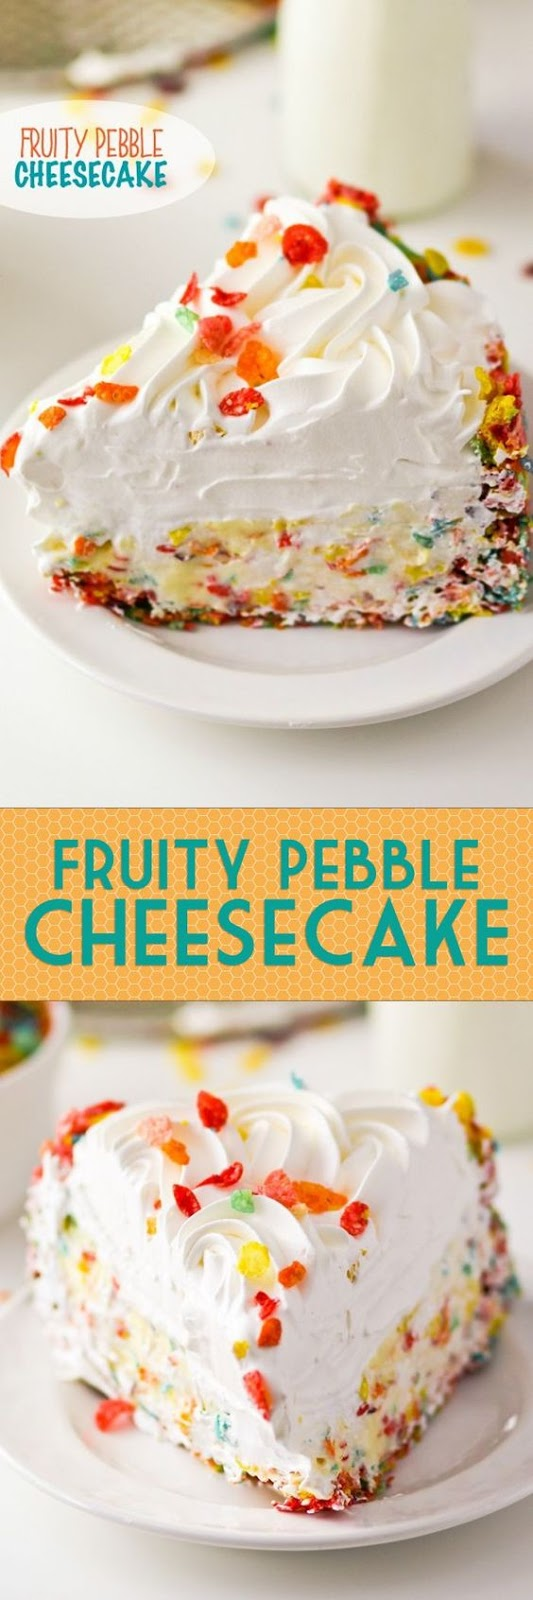 Fruity Pebble Cheesecake